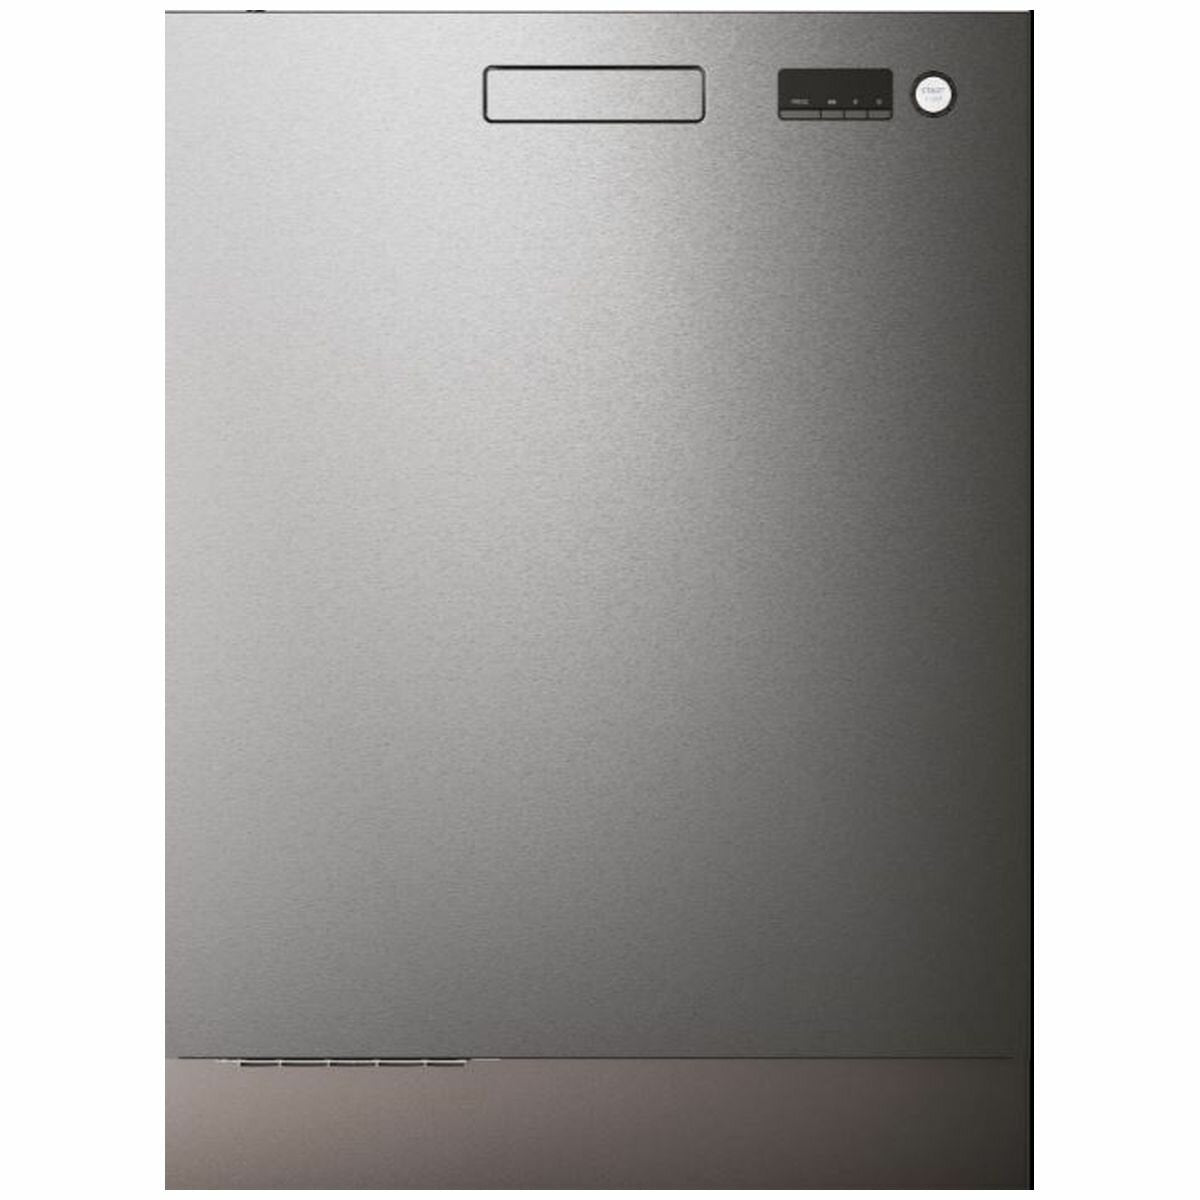 Asko DBI253IBS Turbo Drying Under Bench Dishwasher